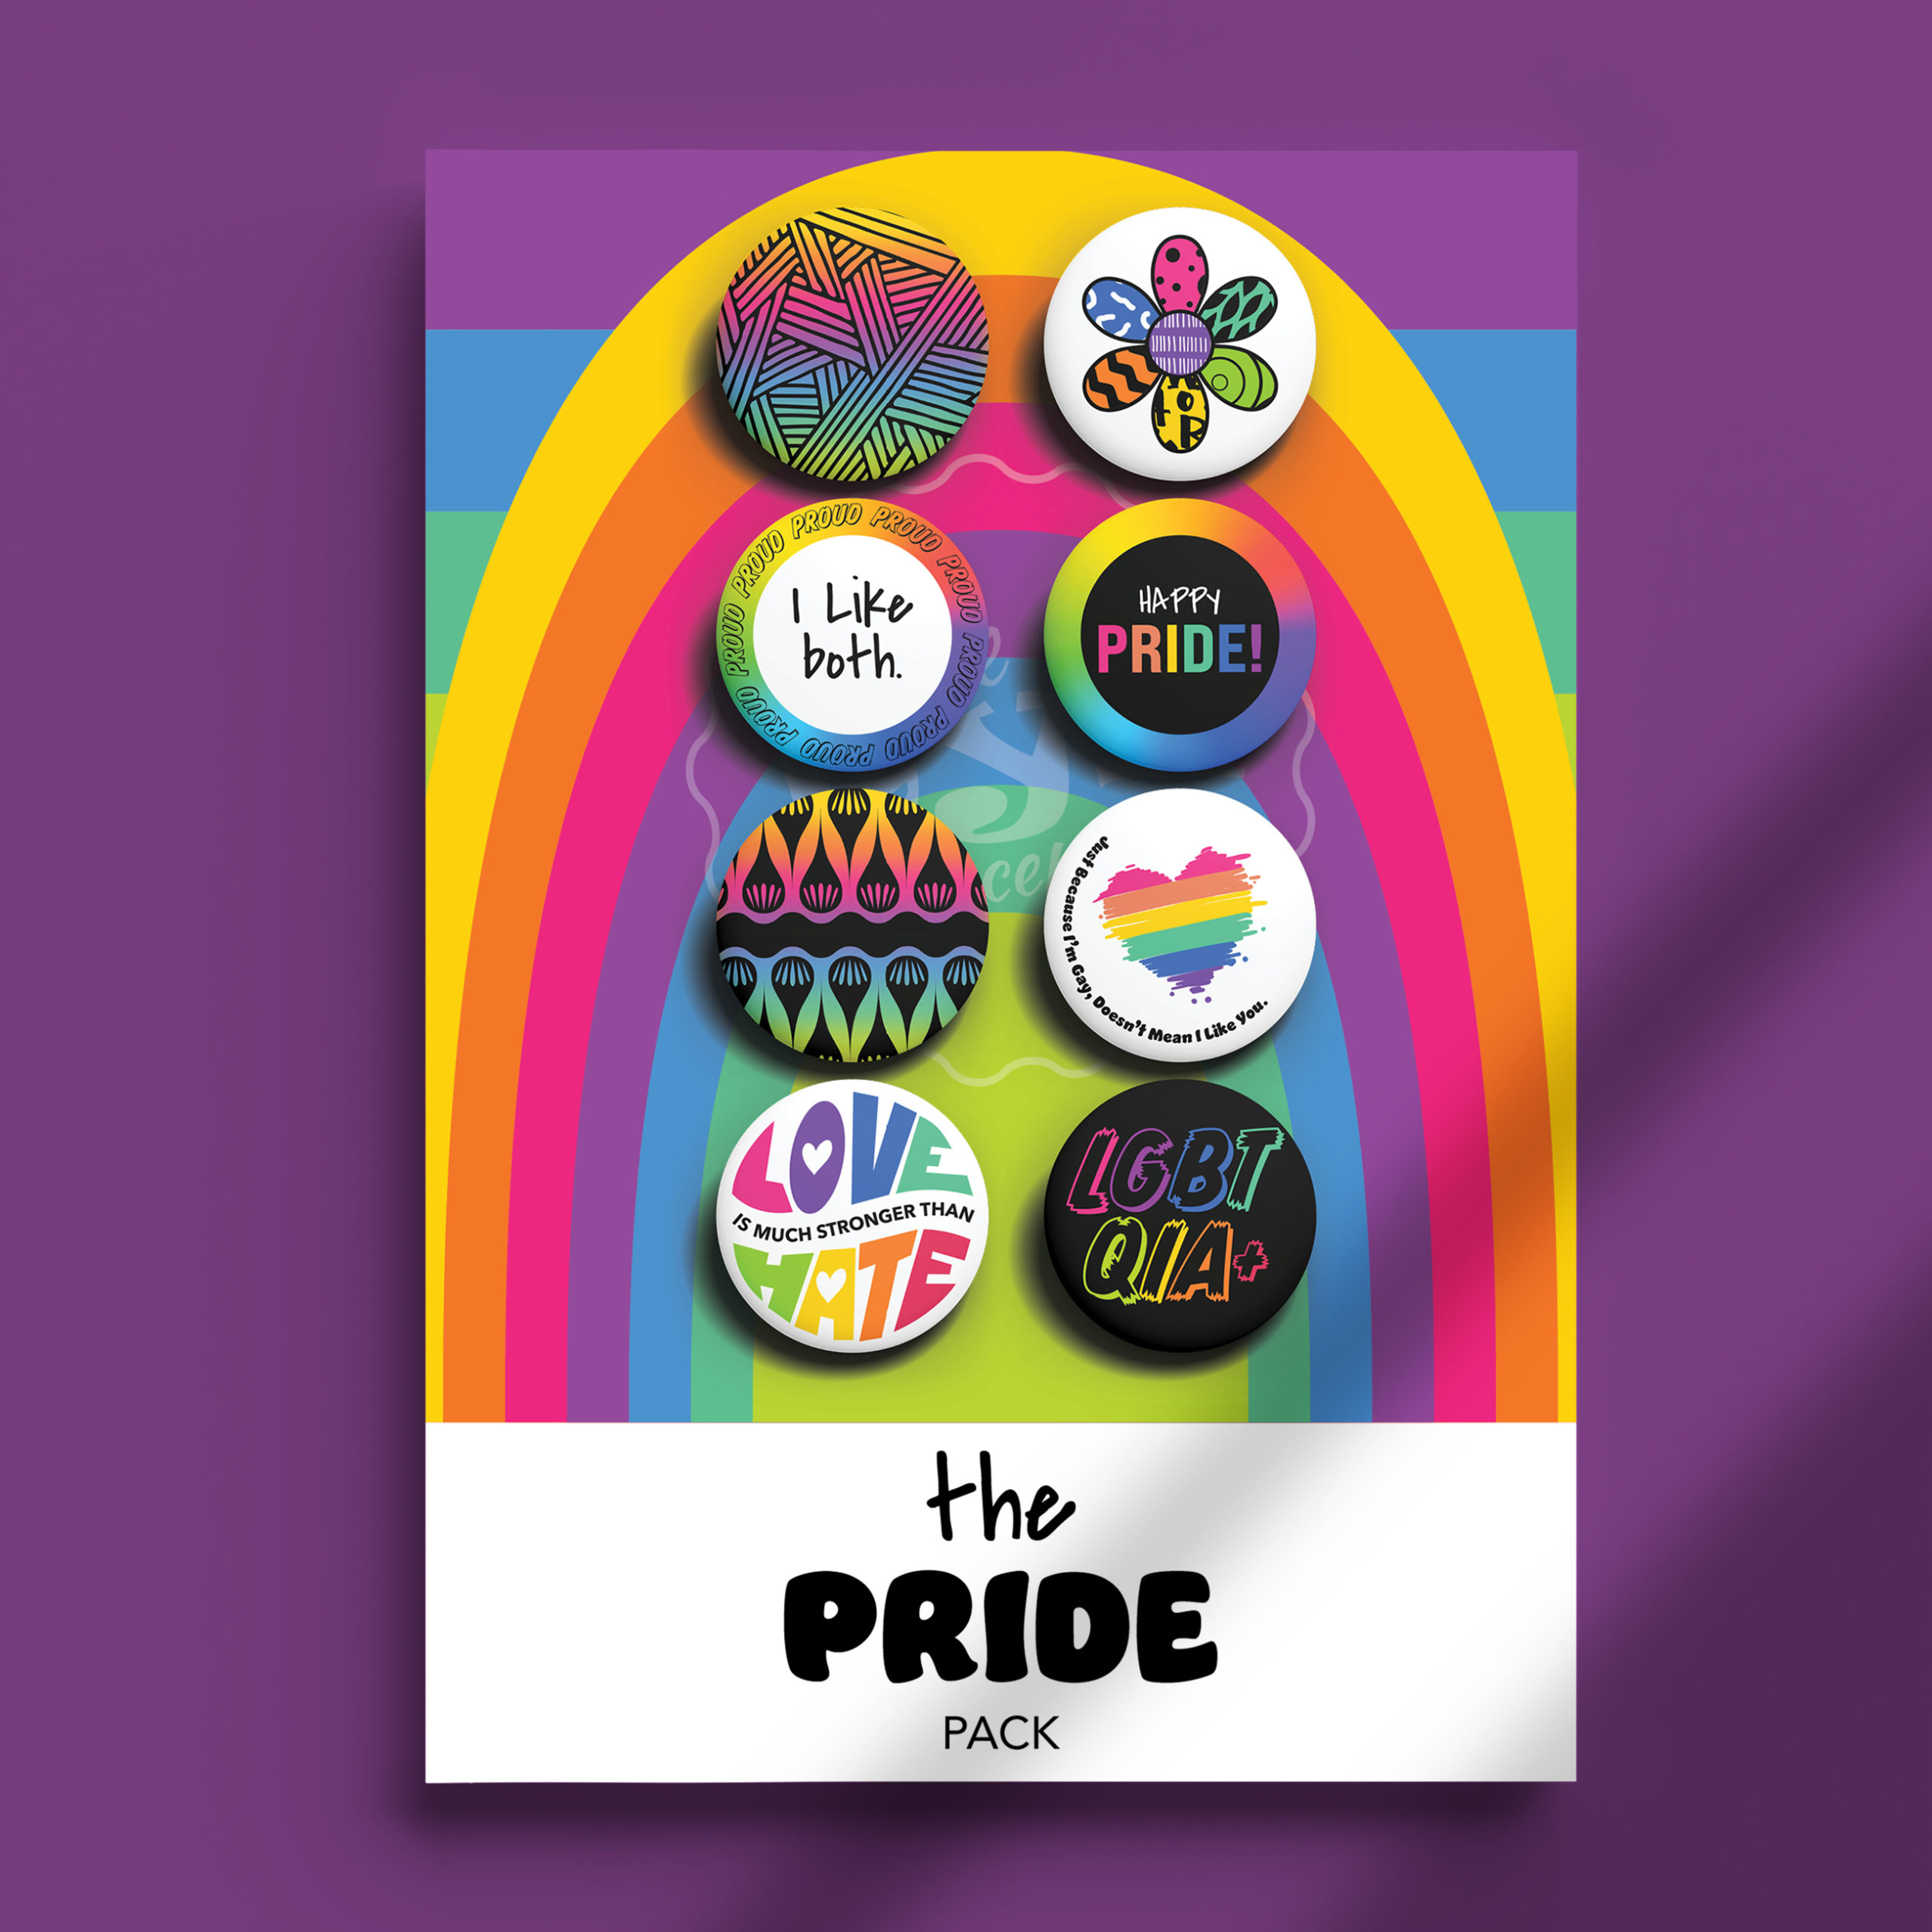 Image of The Pride I Like Both Pack pins on package